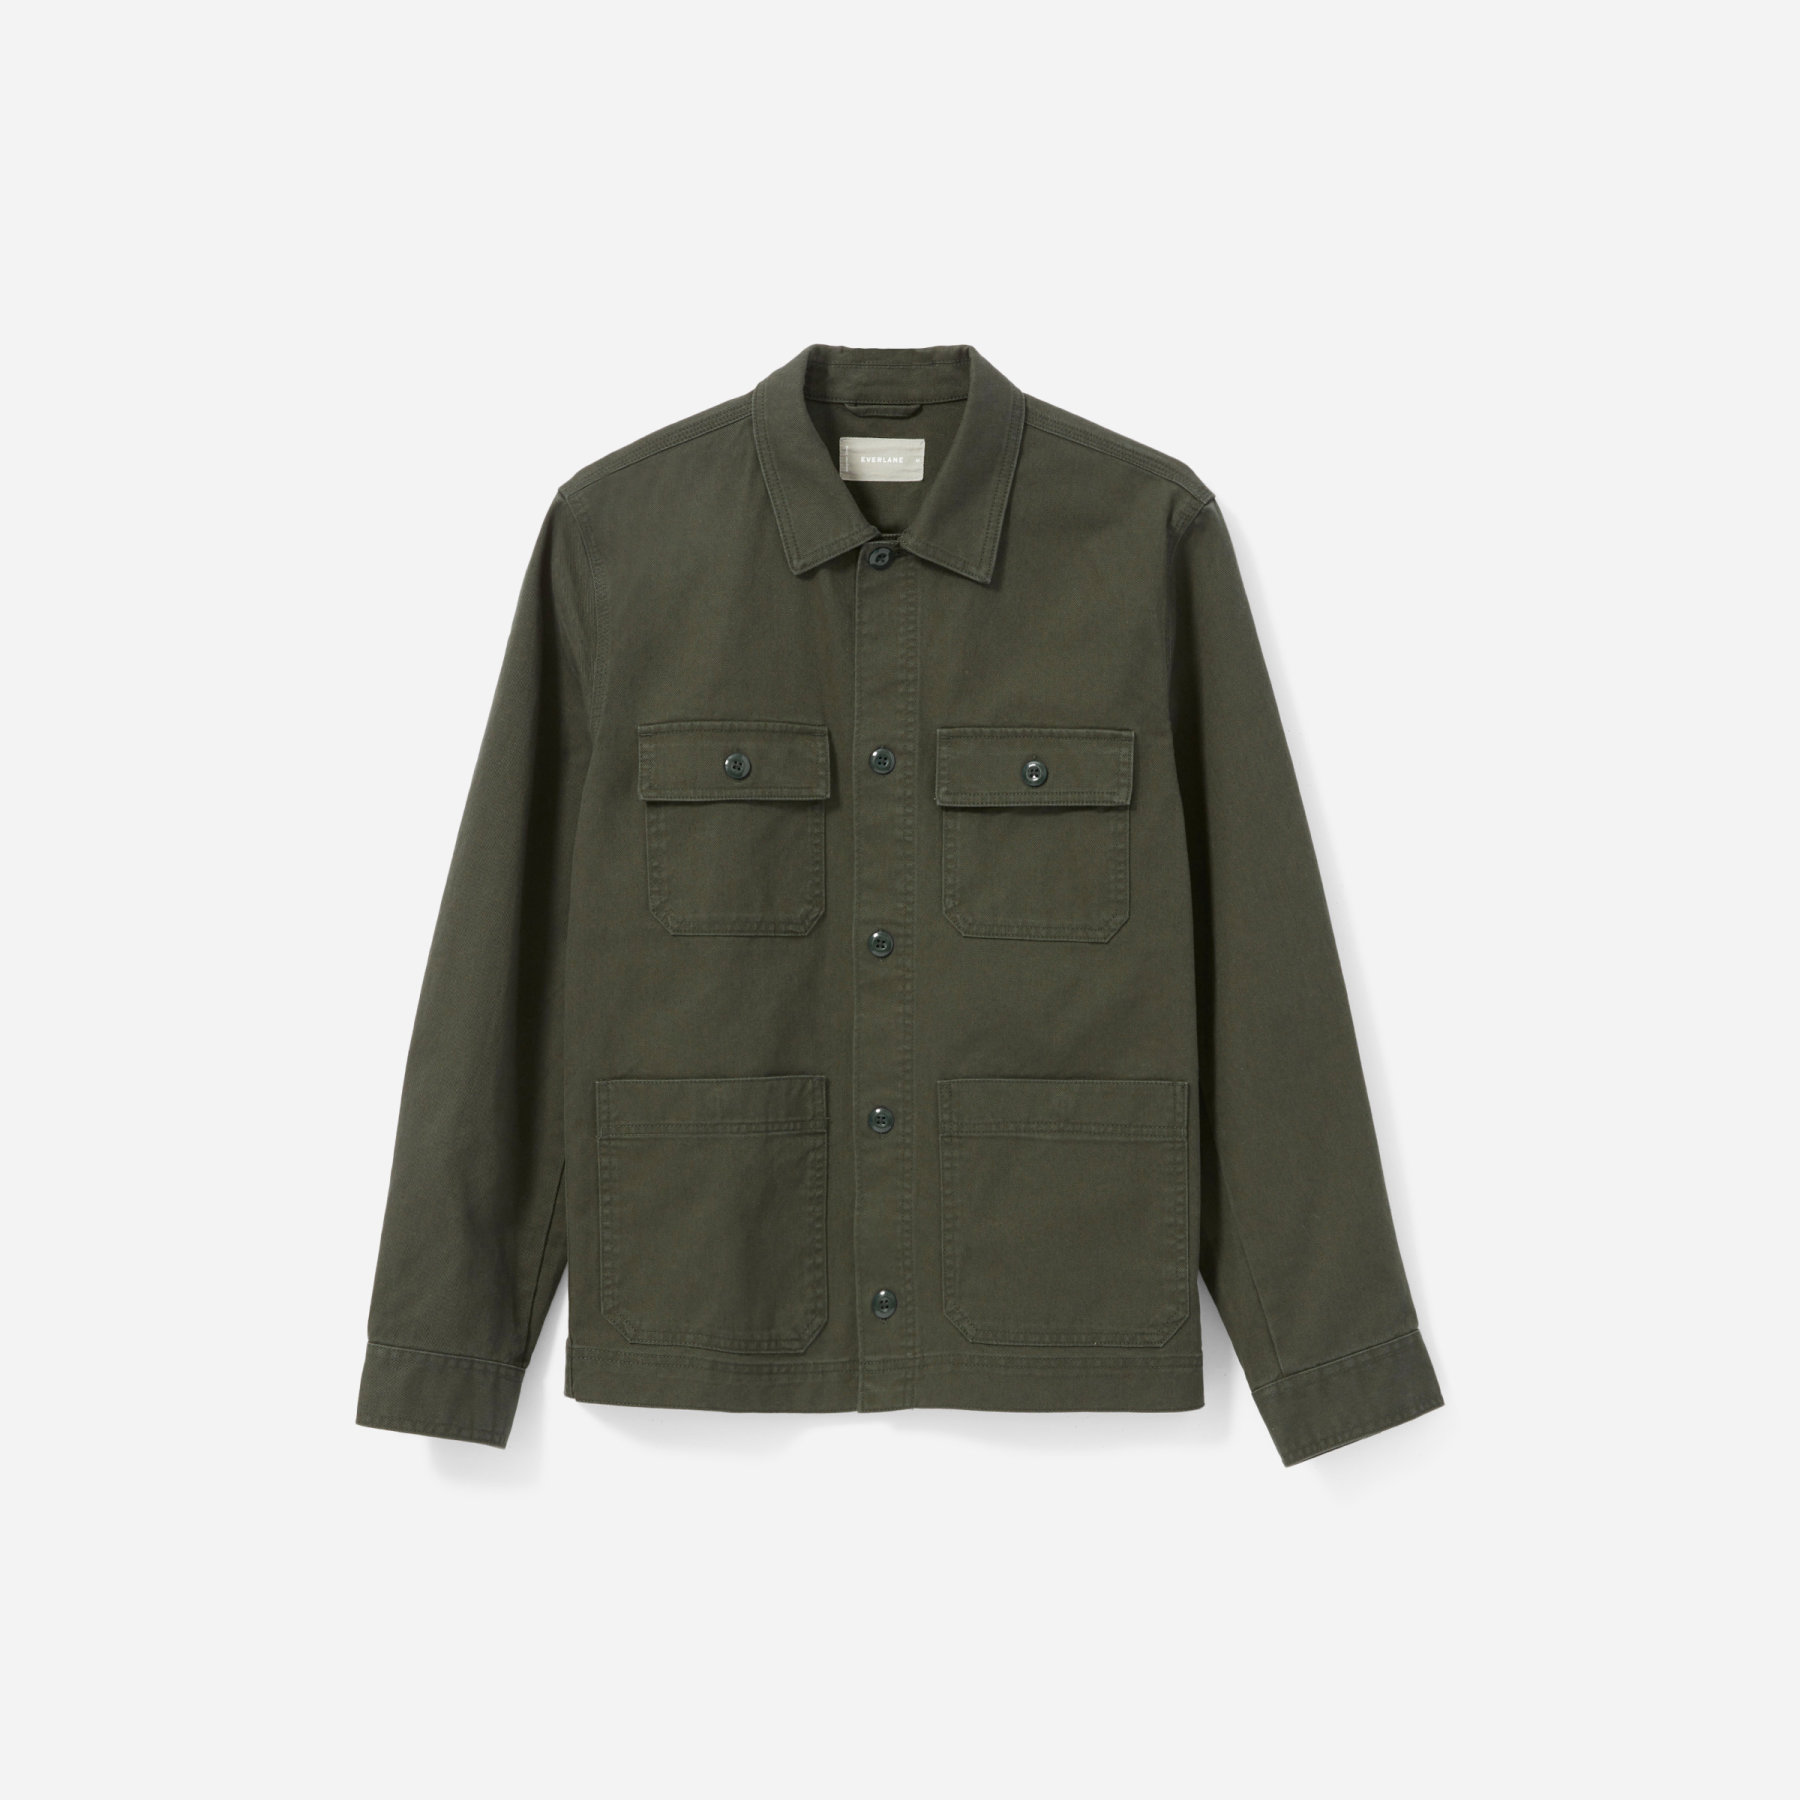 ALL-SORTS-OF-EVERLANE-CHORE-JACKET